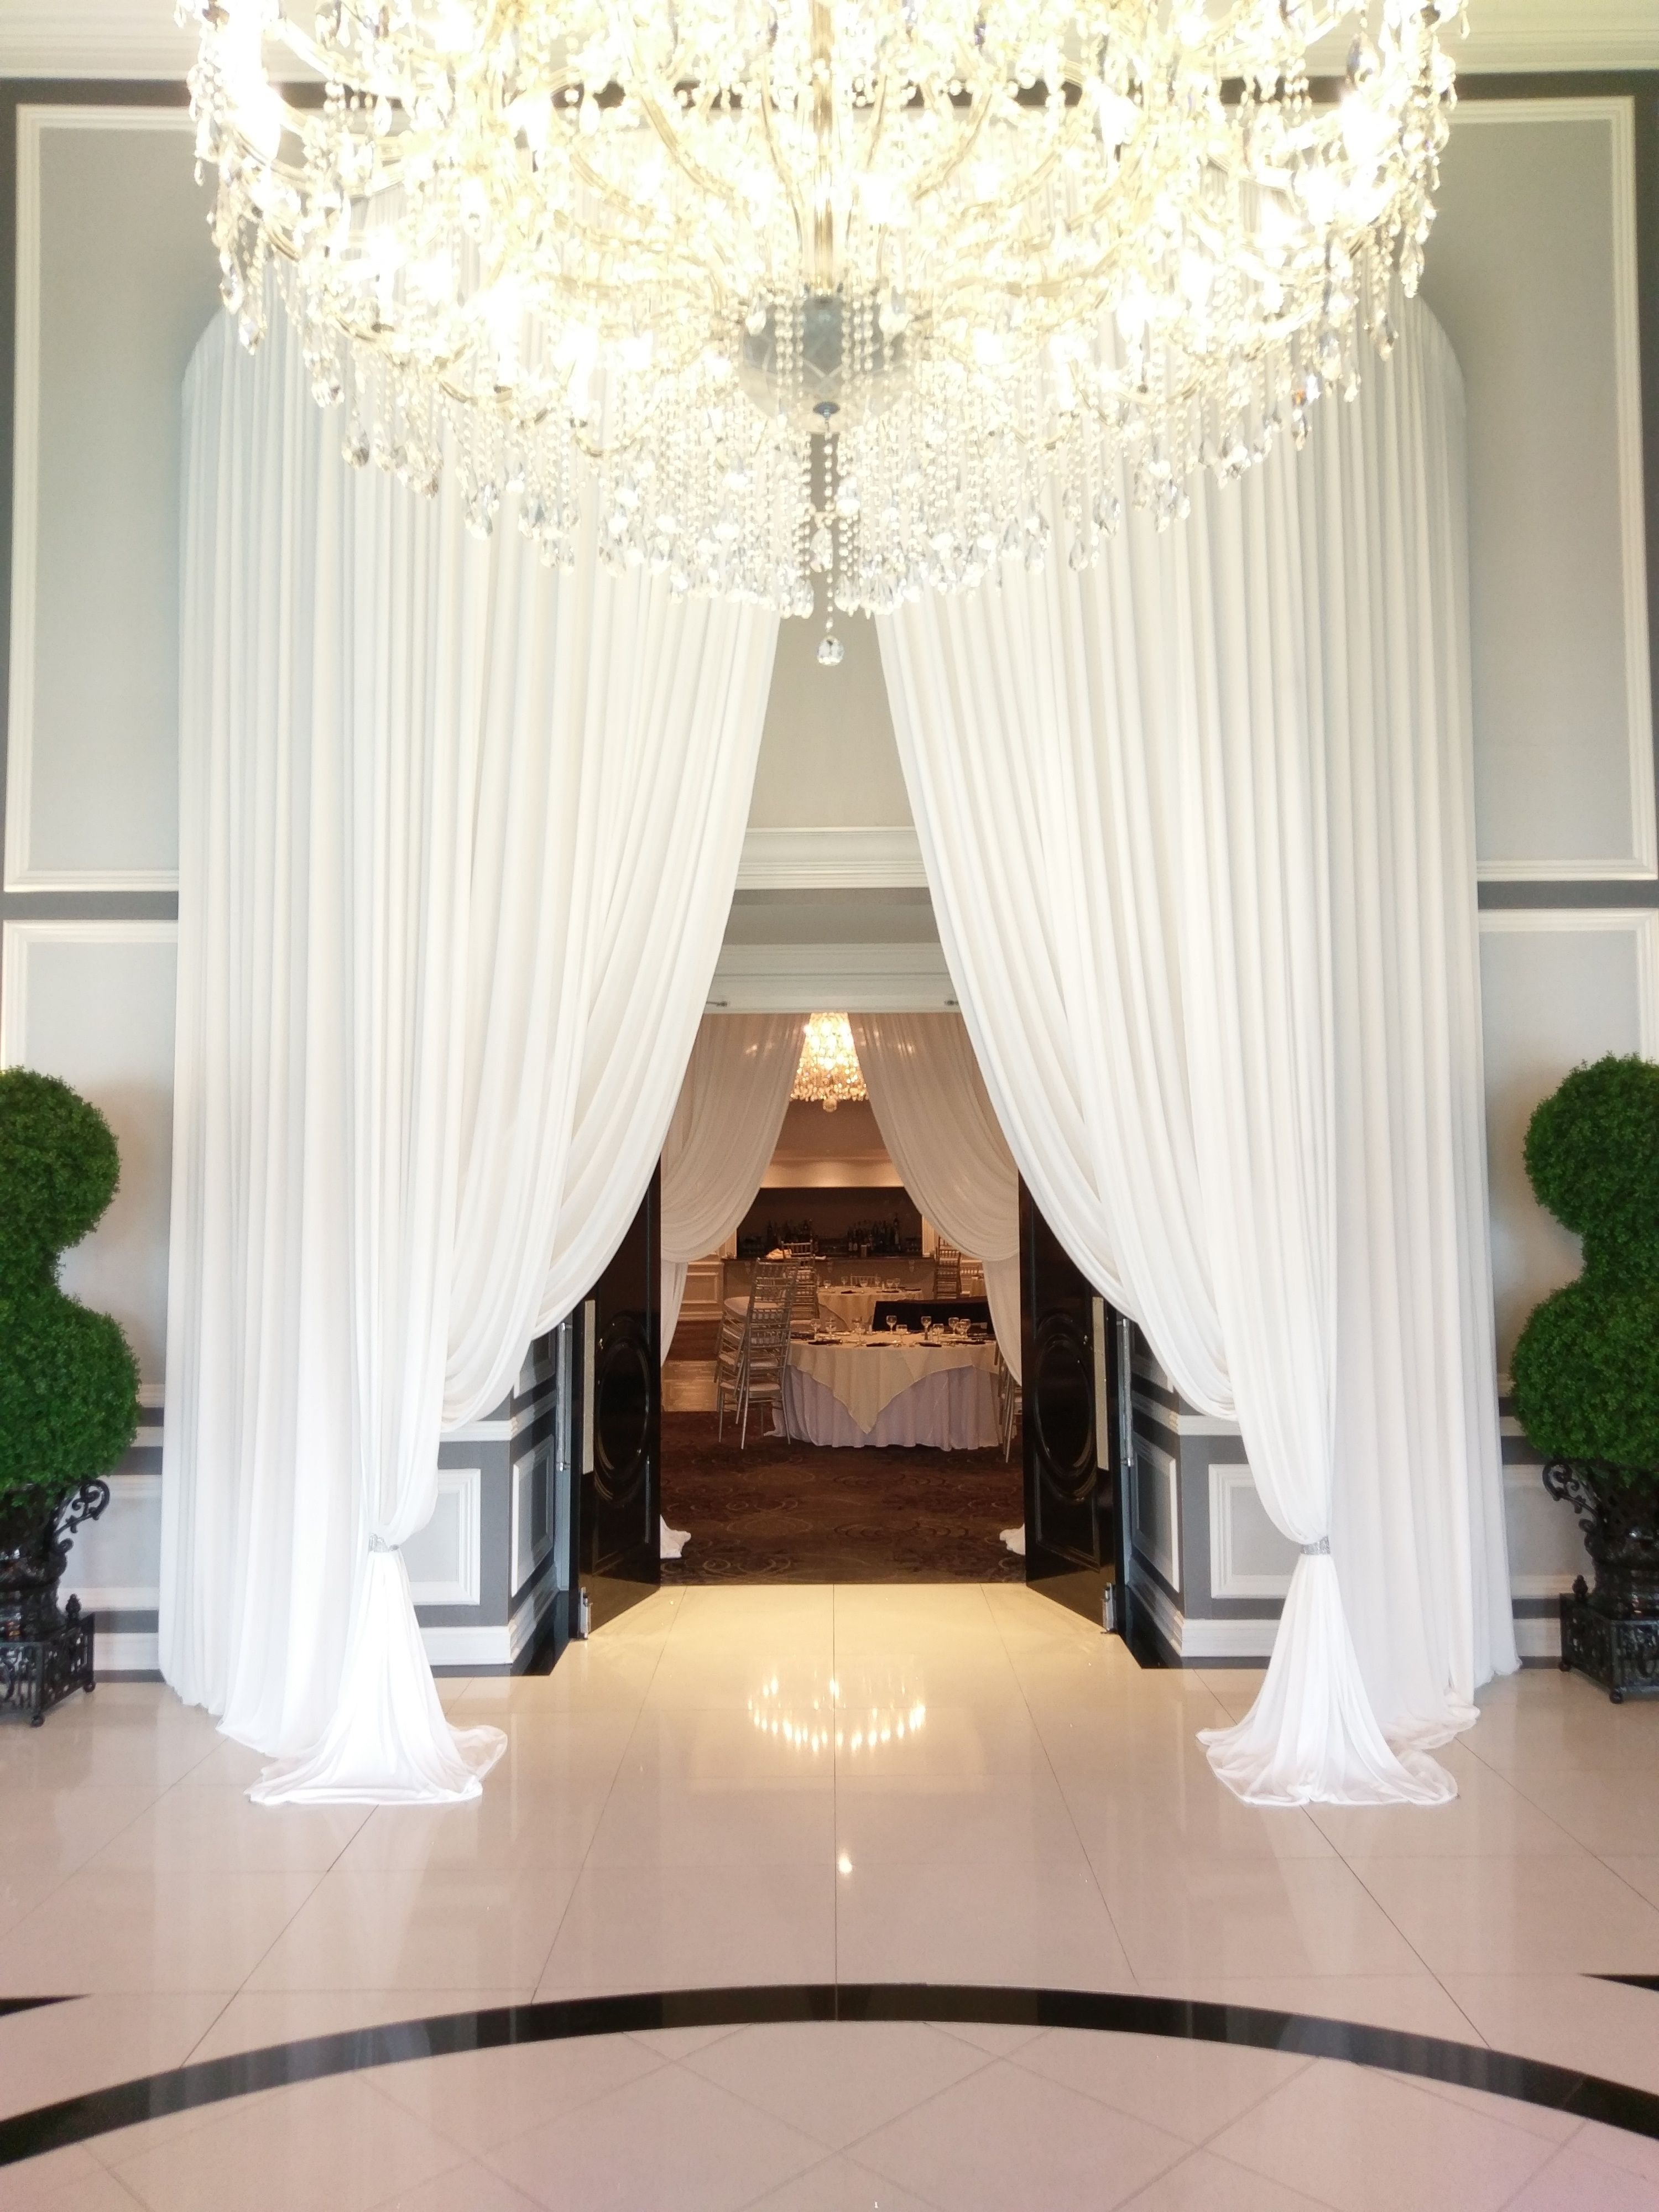 White Grand Entrance Draping Decorating Services Event Decor Wedding Decorations